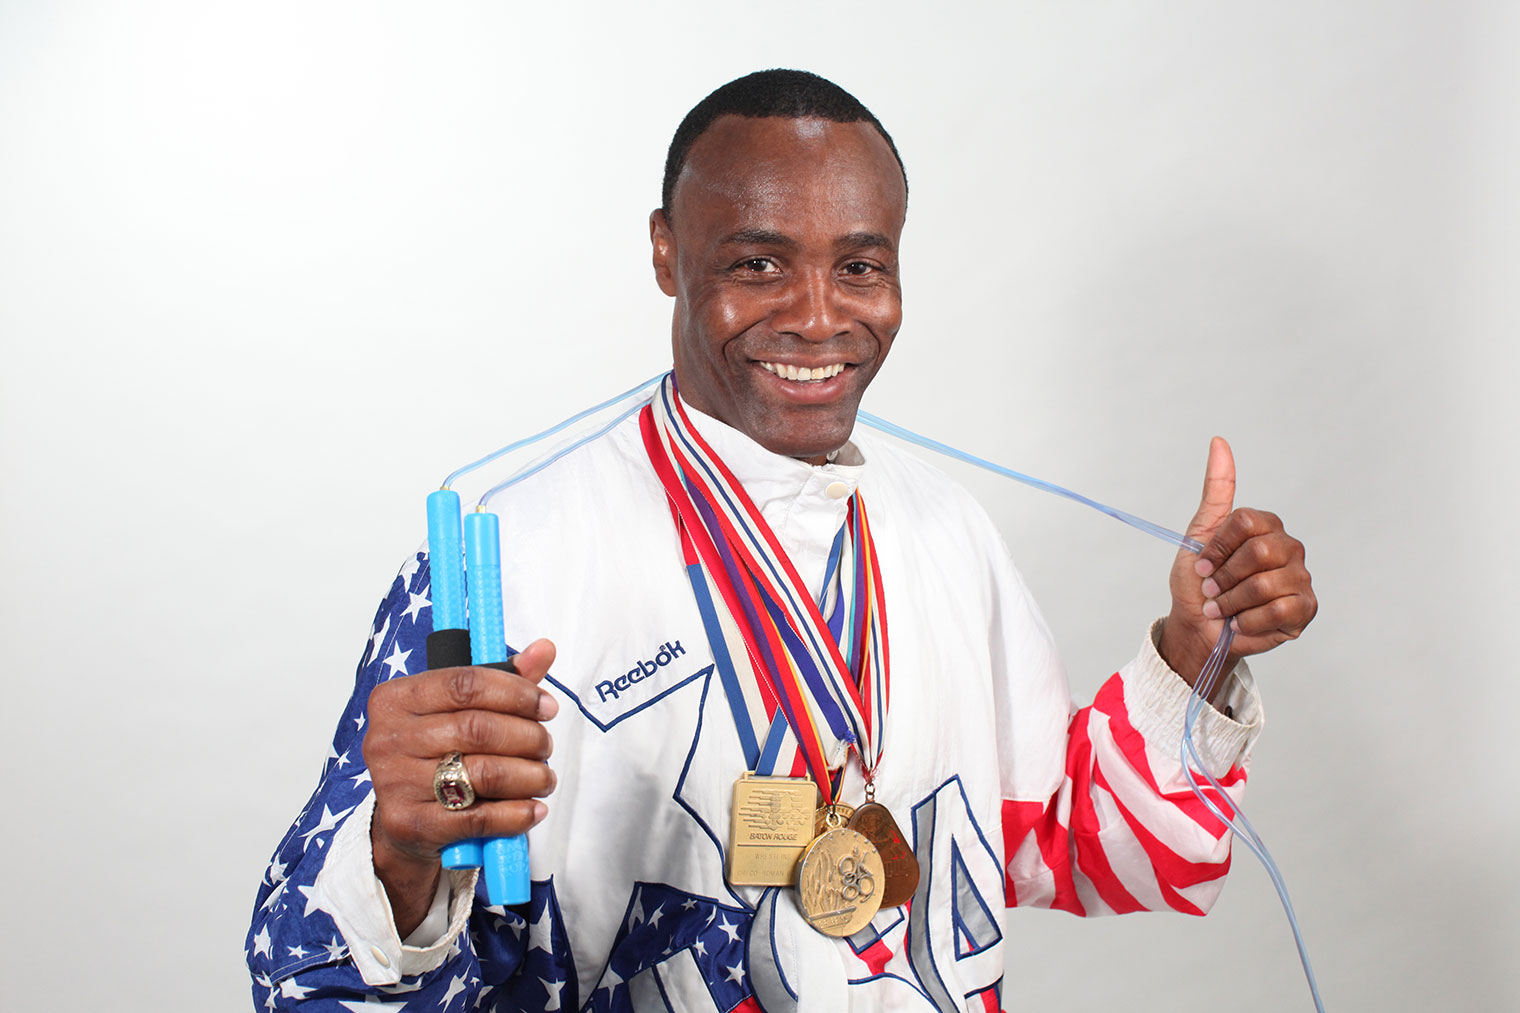 Anthony 'Buddy' Lee, an Olympic wrestler and jump rope fitness advocate, will be the featured speaker at the 2018 Commonwealth Games' opening ceremonies on July 27.